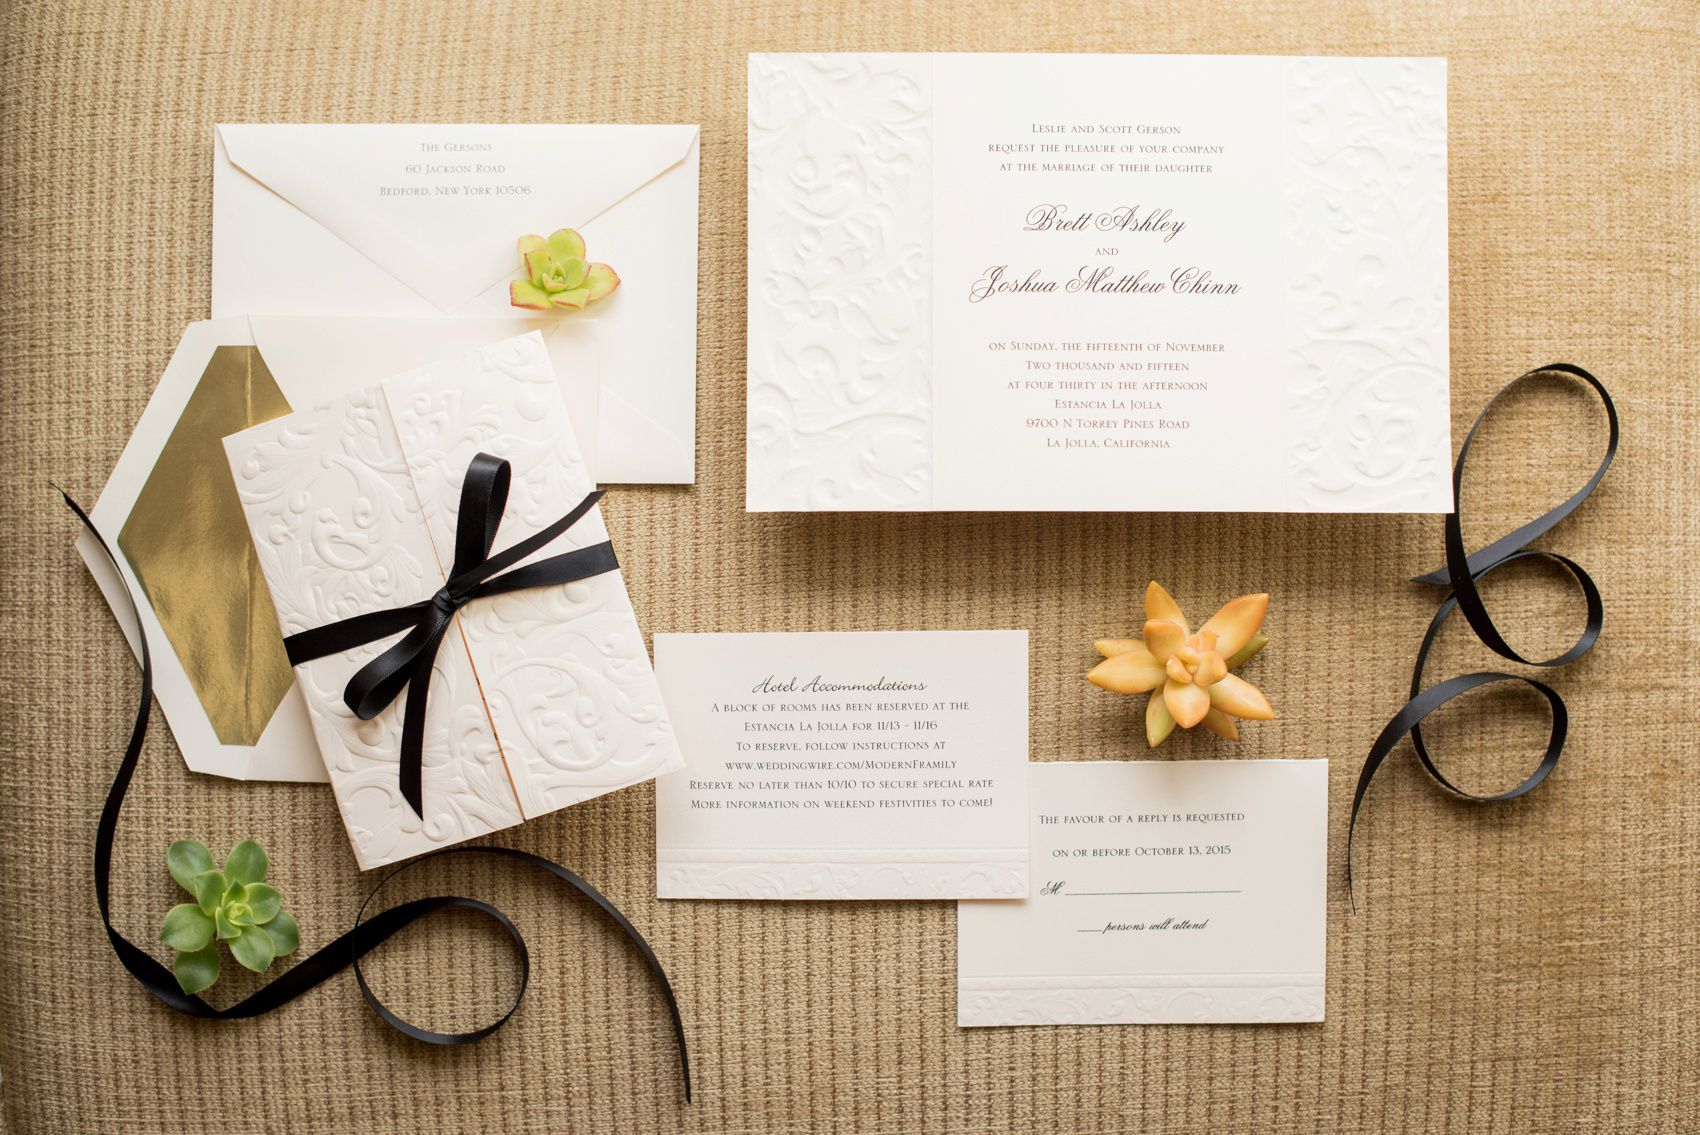 wedding invitation cards design online – Invitation Card Design Wedding